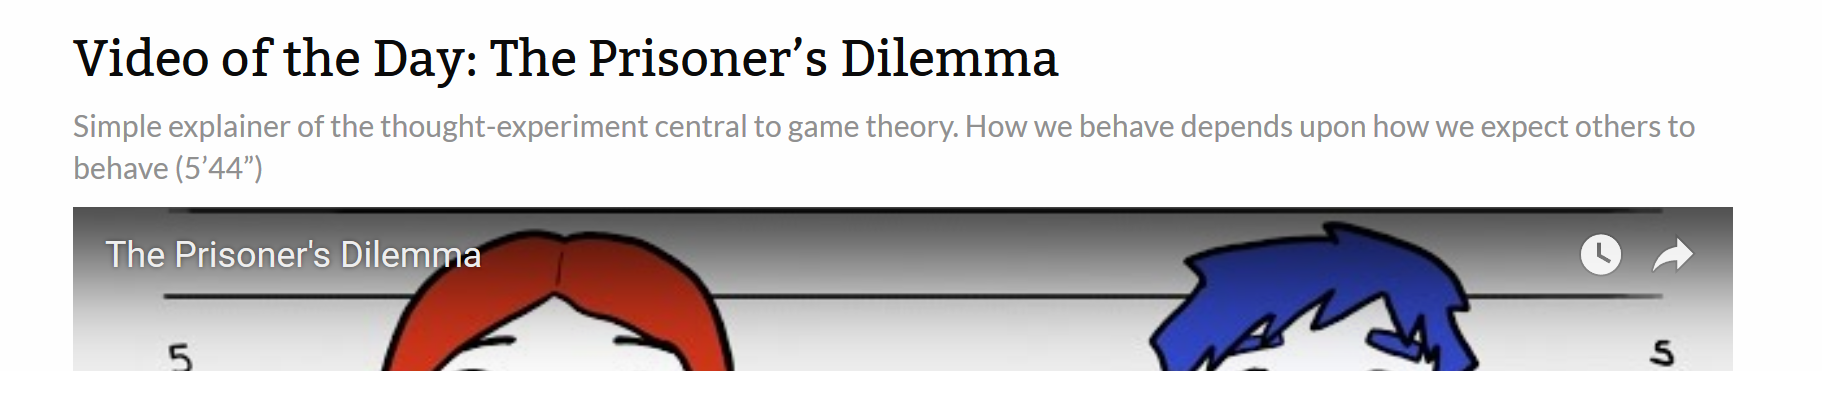 an analysis of different perspectives on the prisoners dilemma This paper presents a summary of tournaments held in 1980, 2004 and  with  the prisoners dilemma is applied to many fields, in politics [1], biology   competitions have given new perspectives on the social and biological.